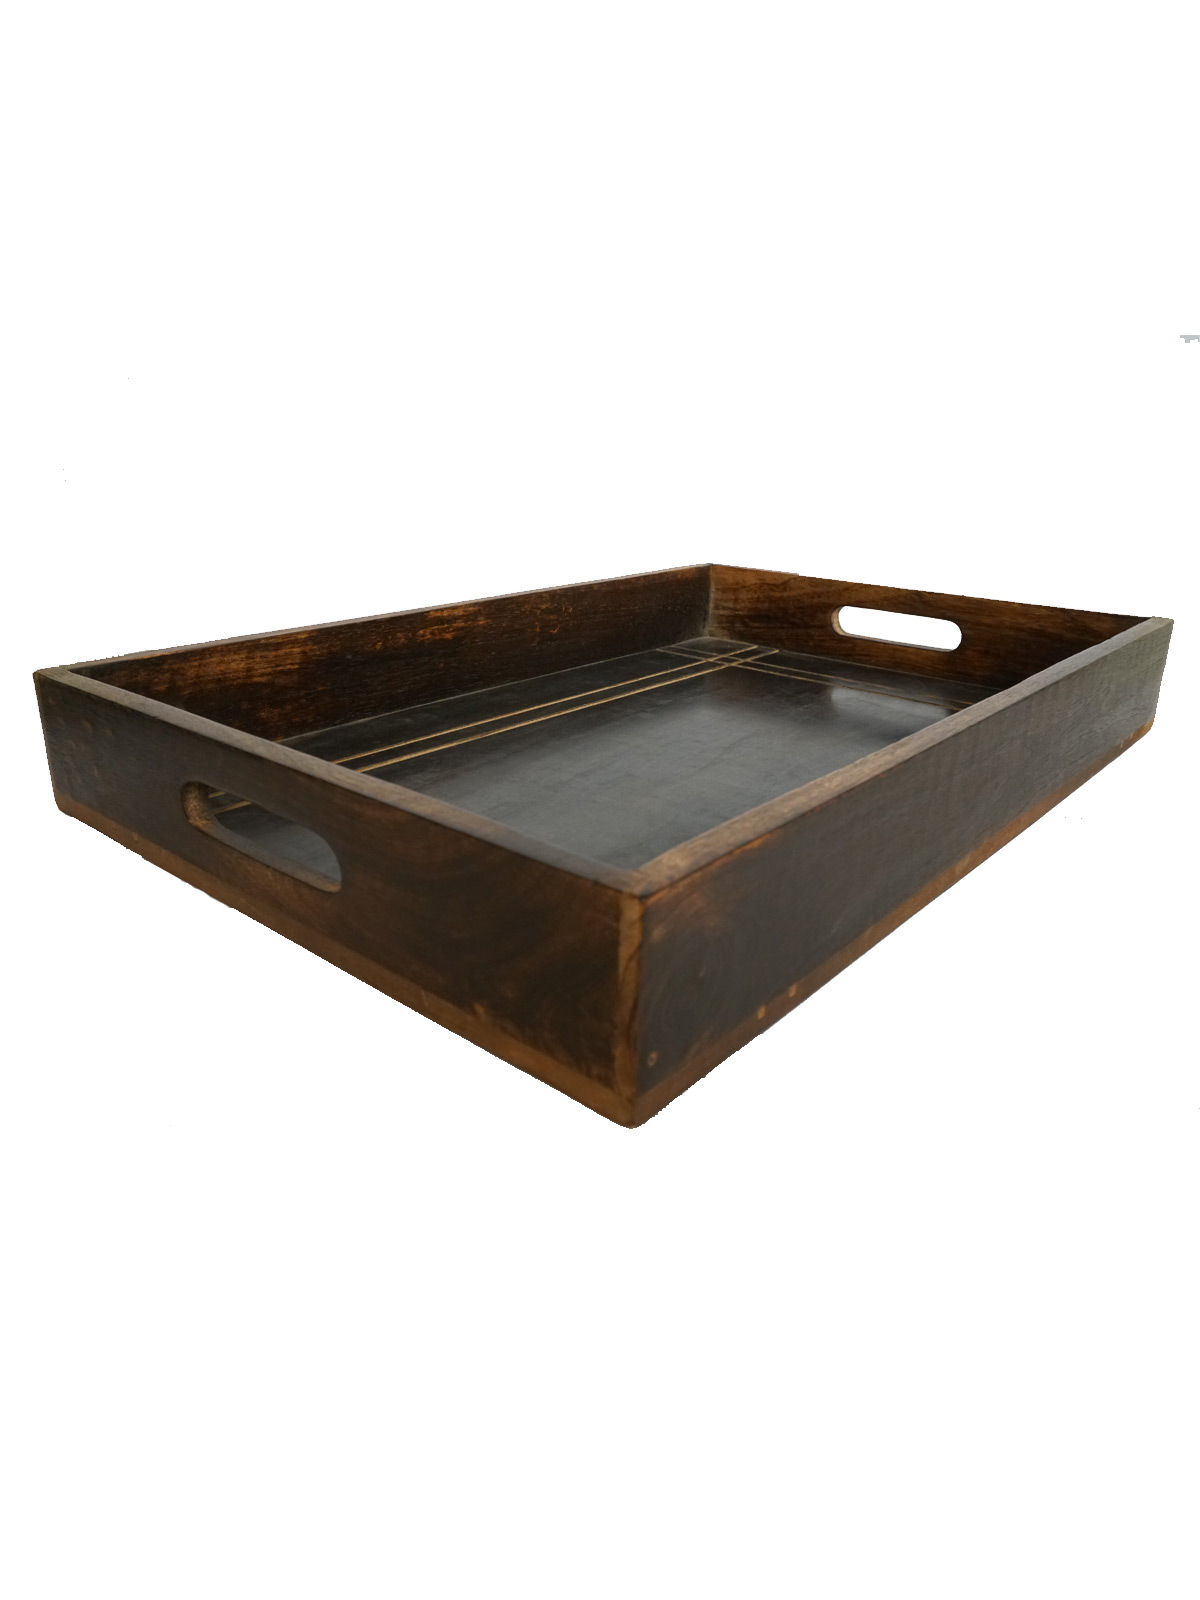 INTHING Tray with Lines